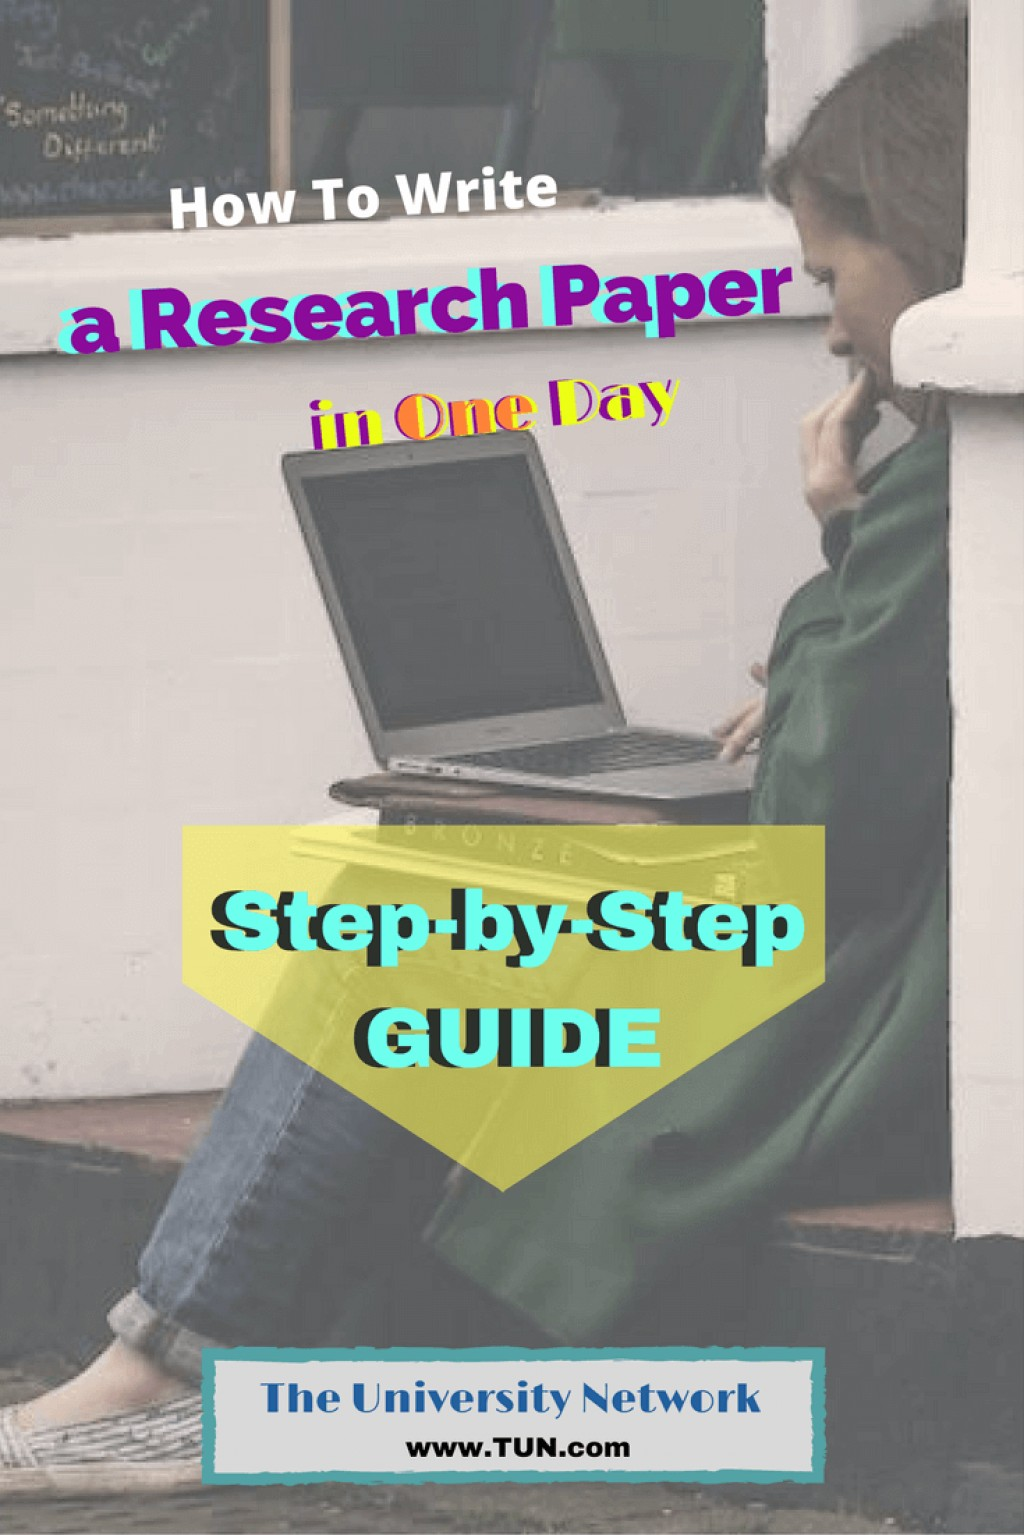 014 Can You Write Research Paper In Archaicawful A Day Large